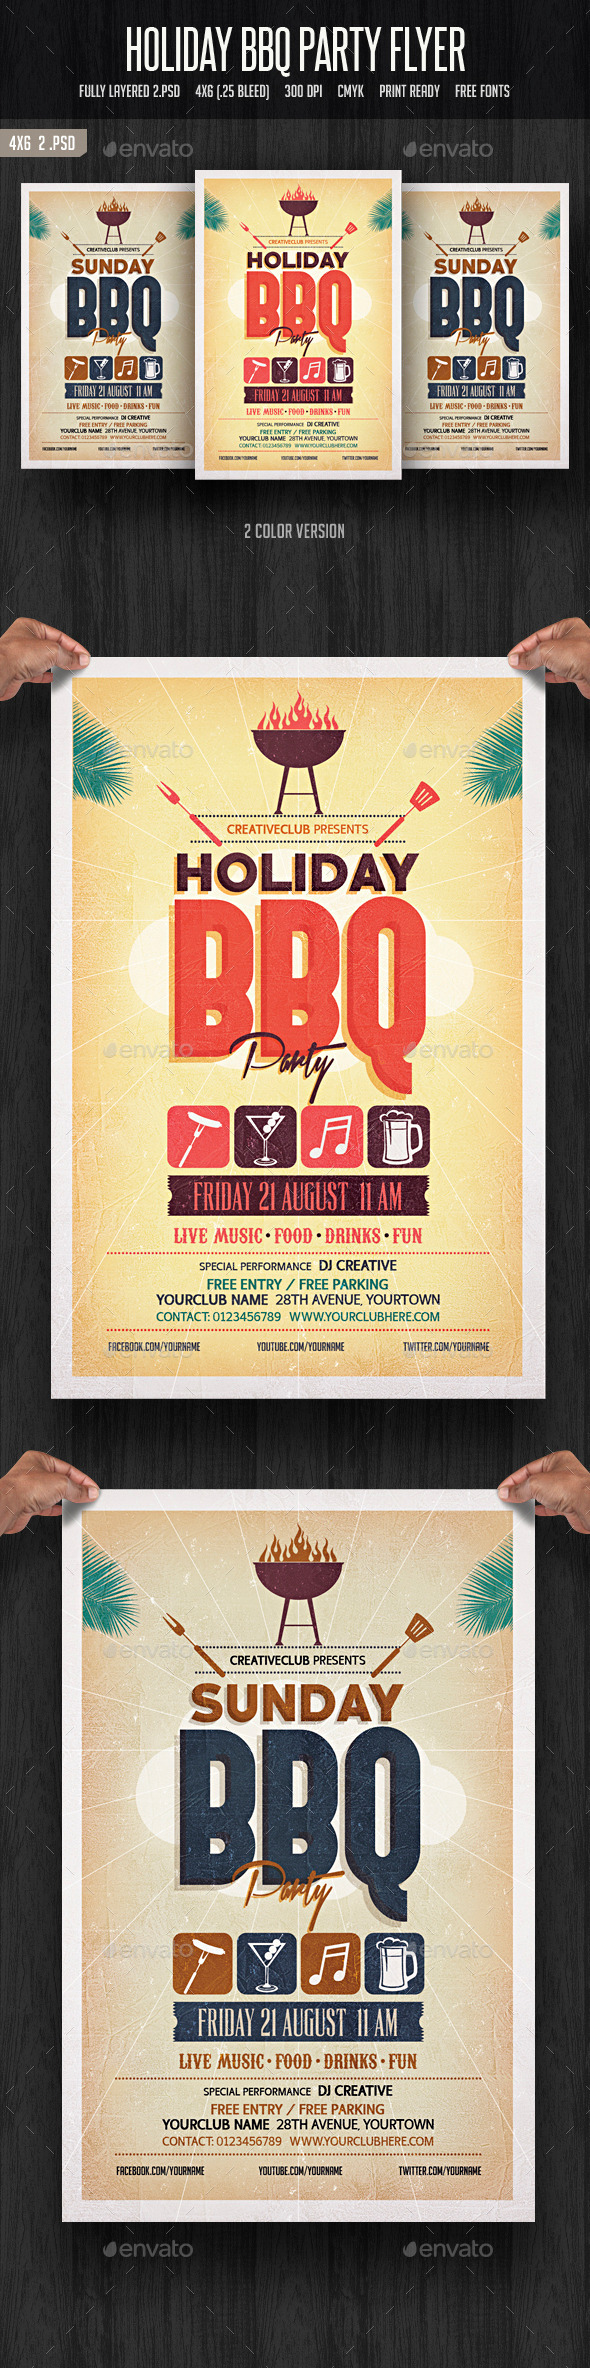 GraphicRiver Holiday BBQ Party Flyer 11867088